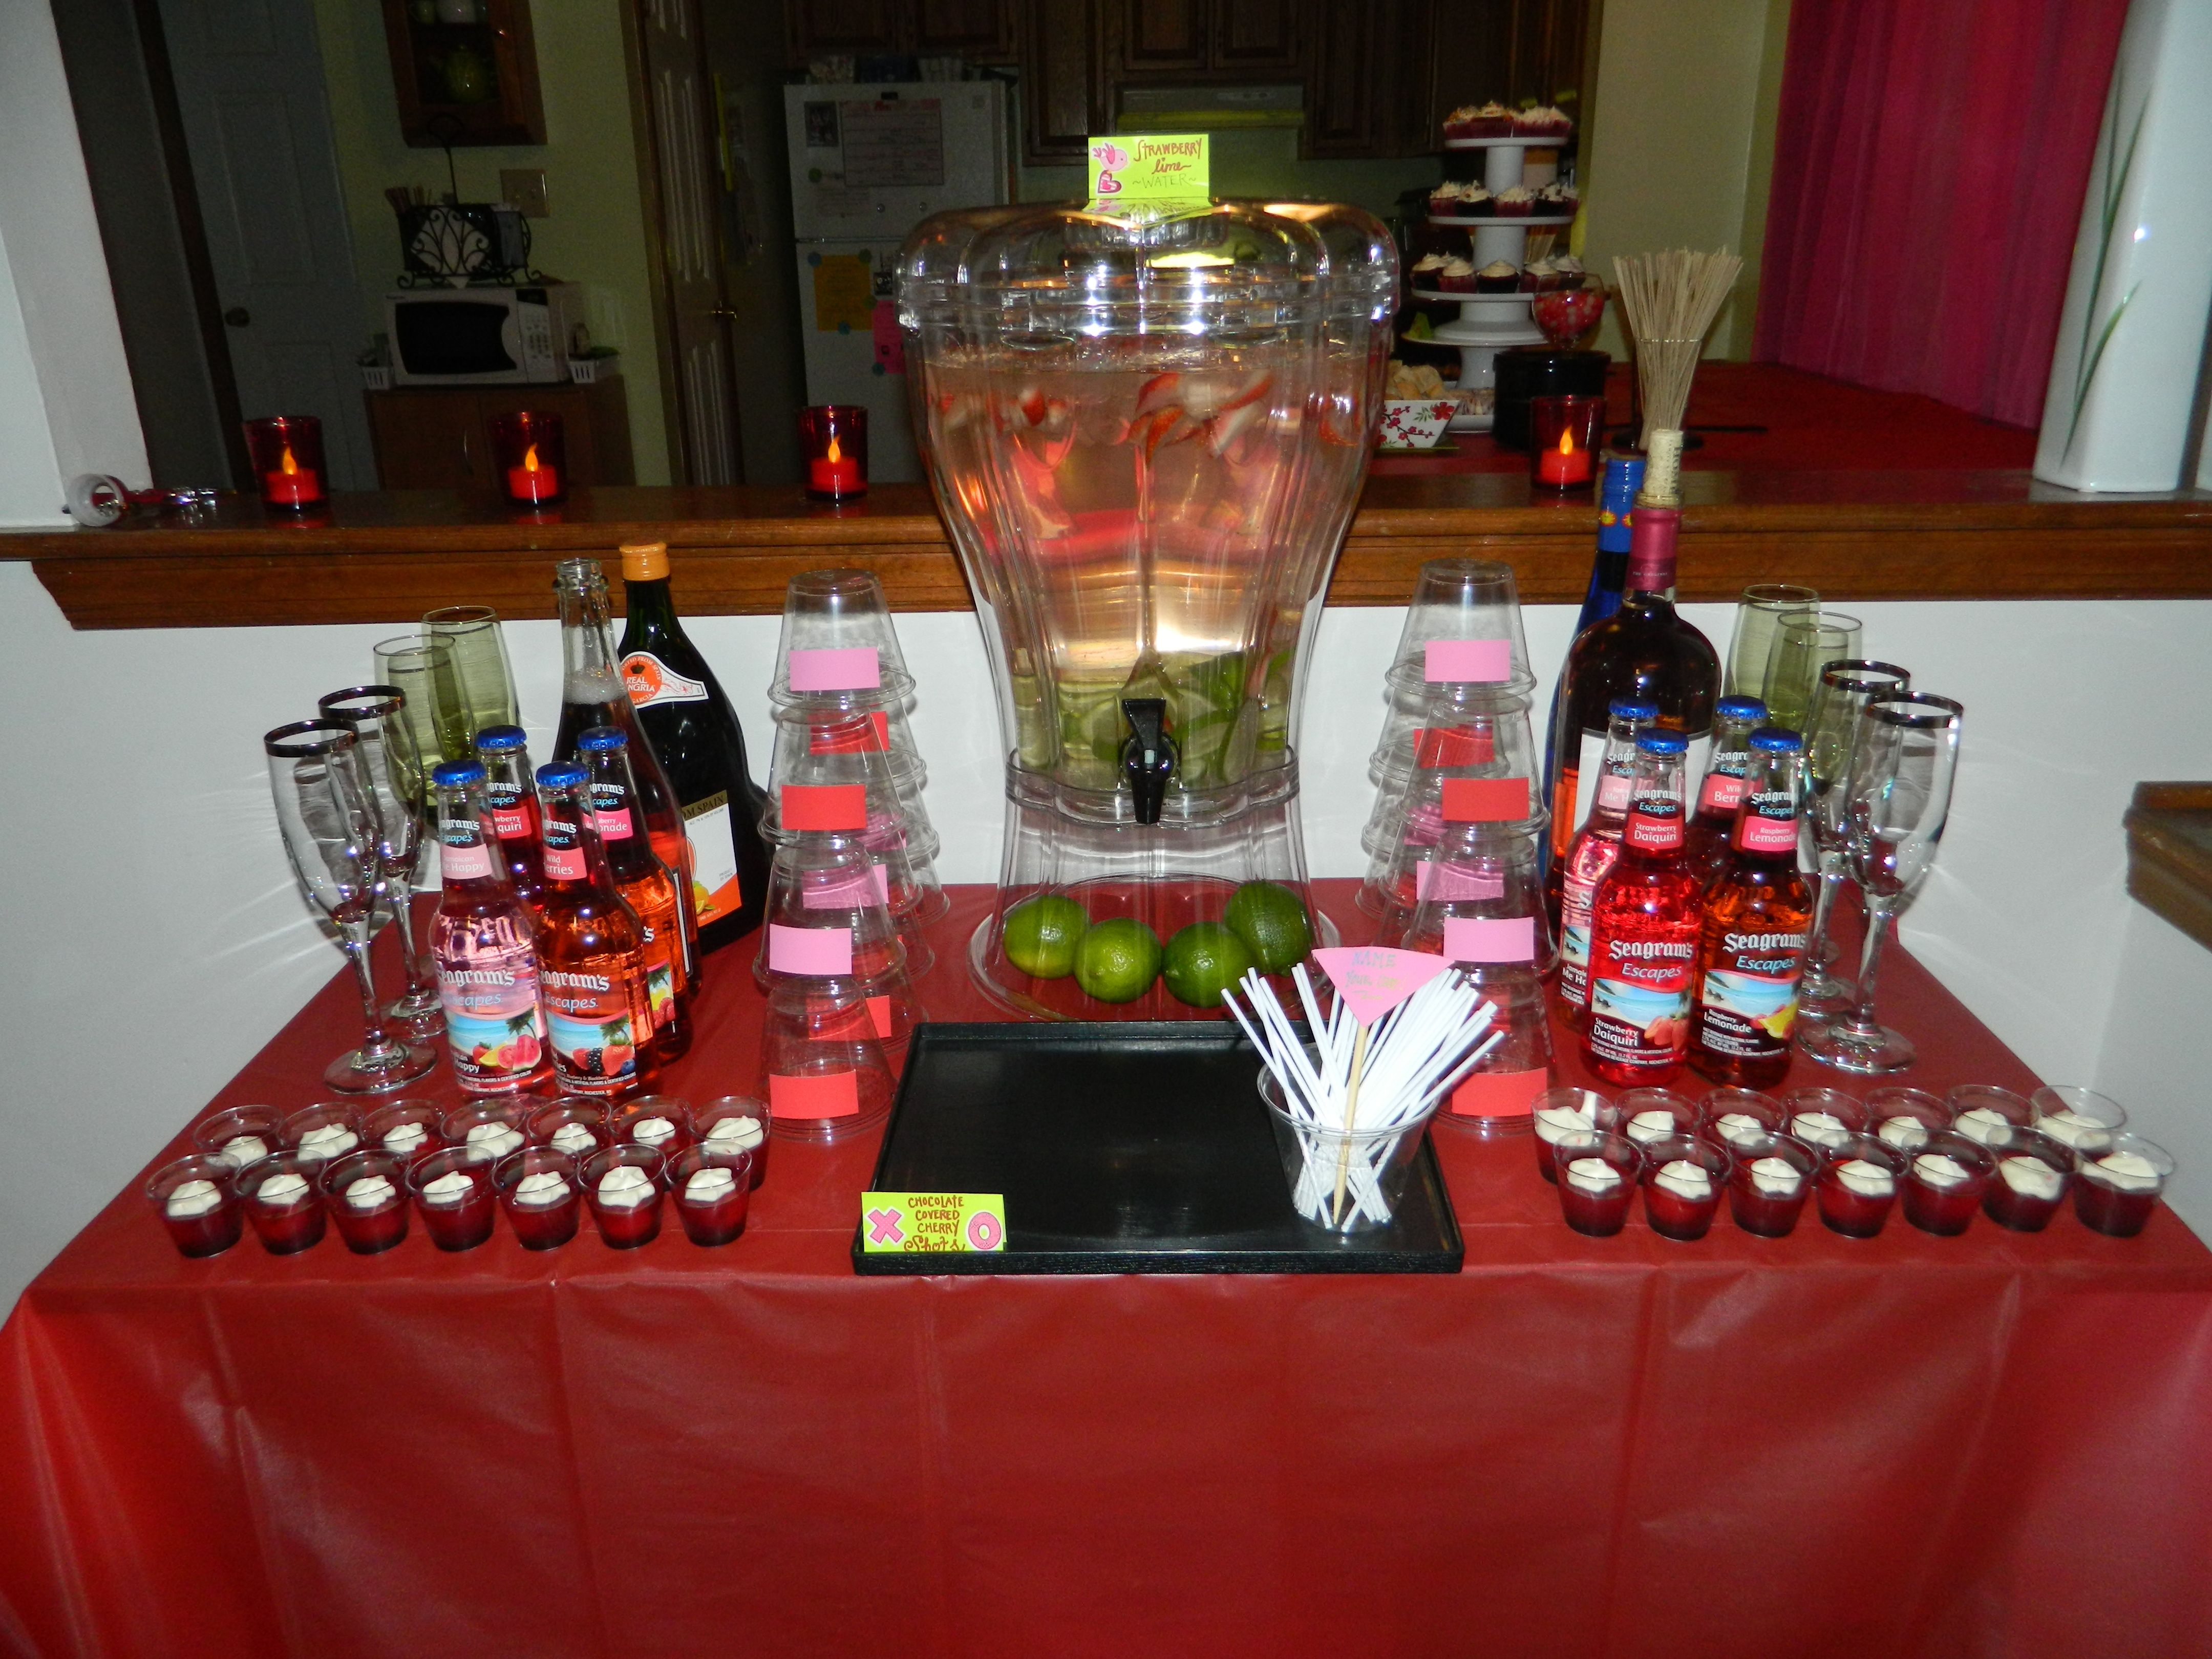 Beverage Station Flavored Water Wine And My Fave Chocolate Covered Cherry Shots P S Don T Chocolate Covered Cherries Strawberry Lime Flavored Water